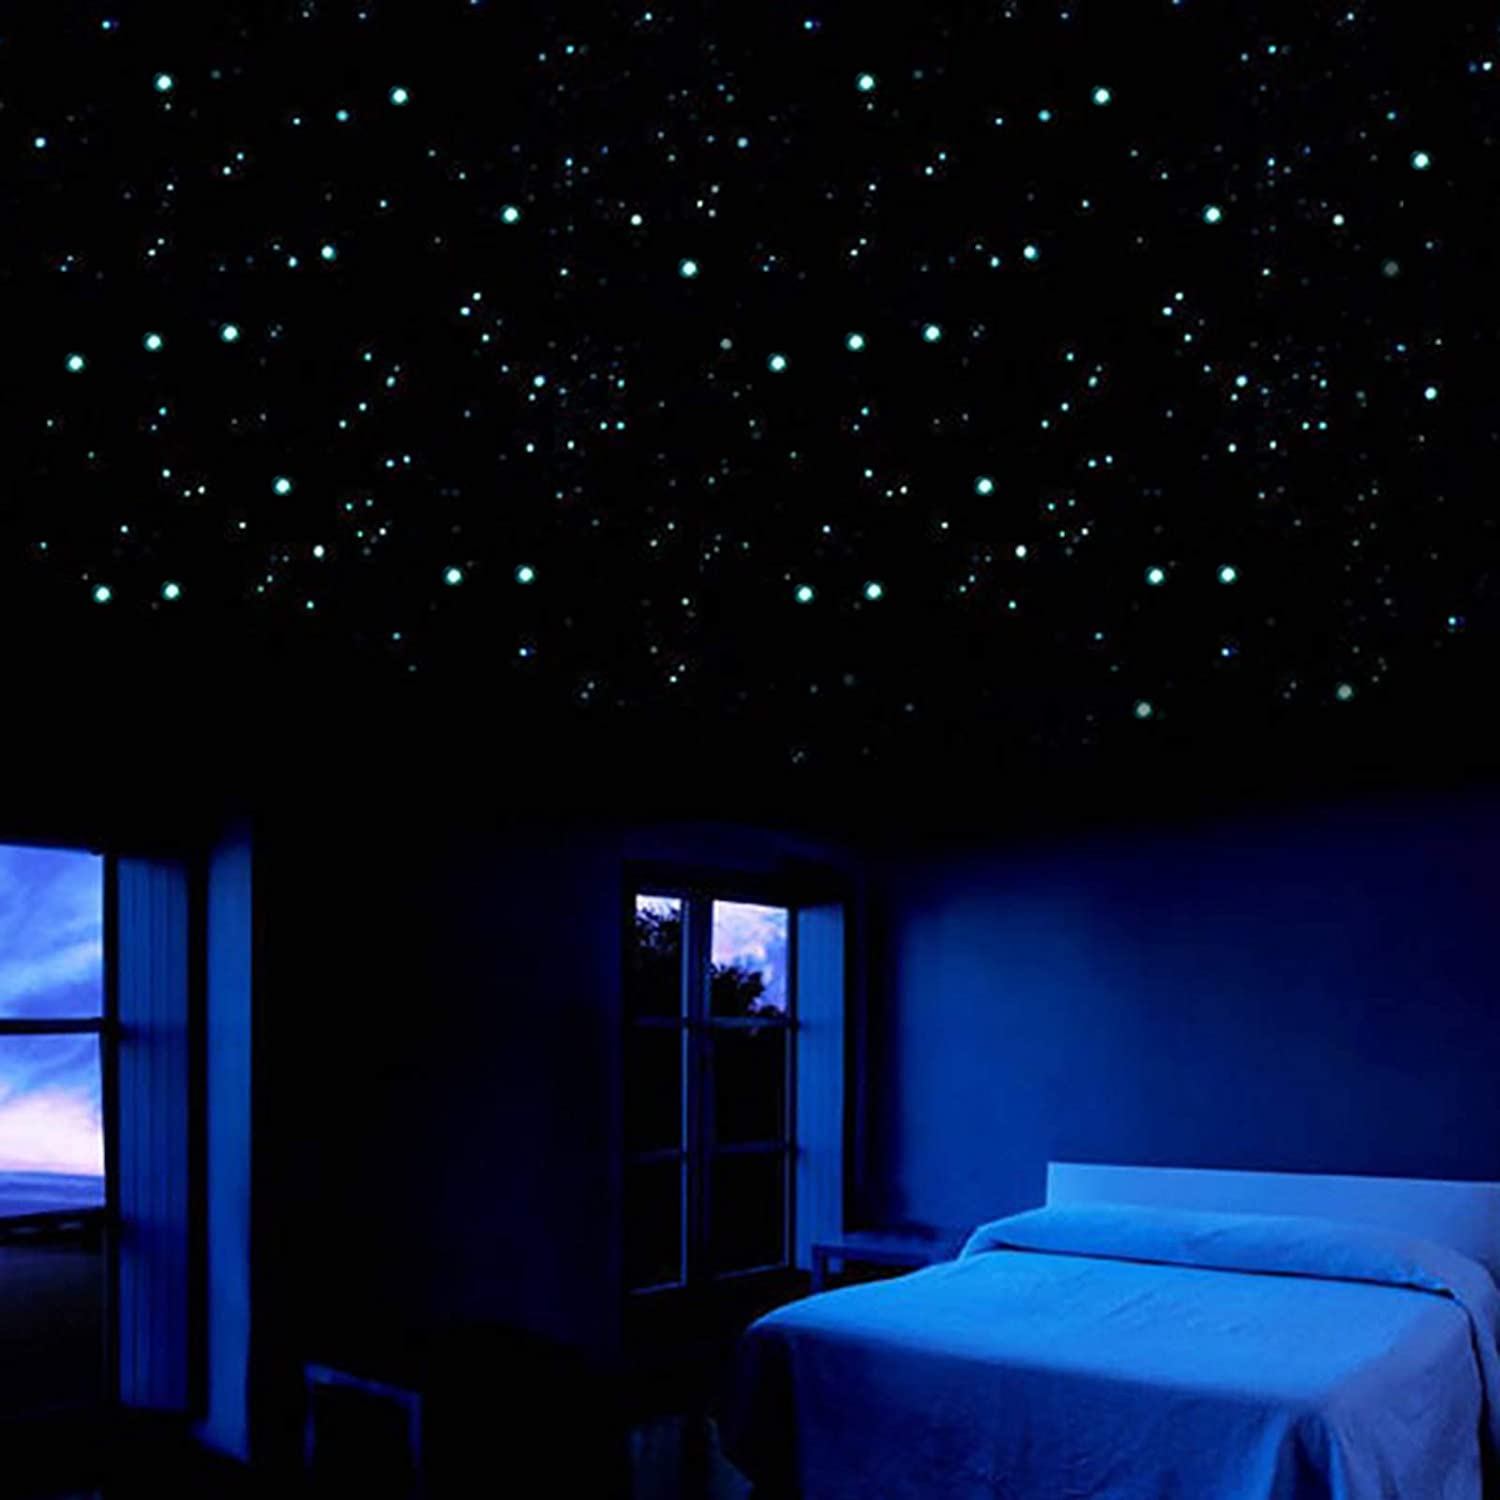 826 Pcs Glowing Wall Stickers 3D Stars Dots Stickers for Kids Bedroom Ceiling Wall Decoration Birthday Gifts Holiday Atmosphere